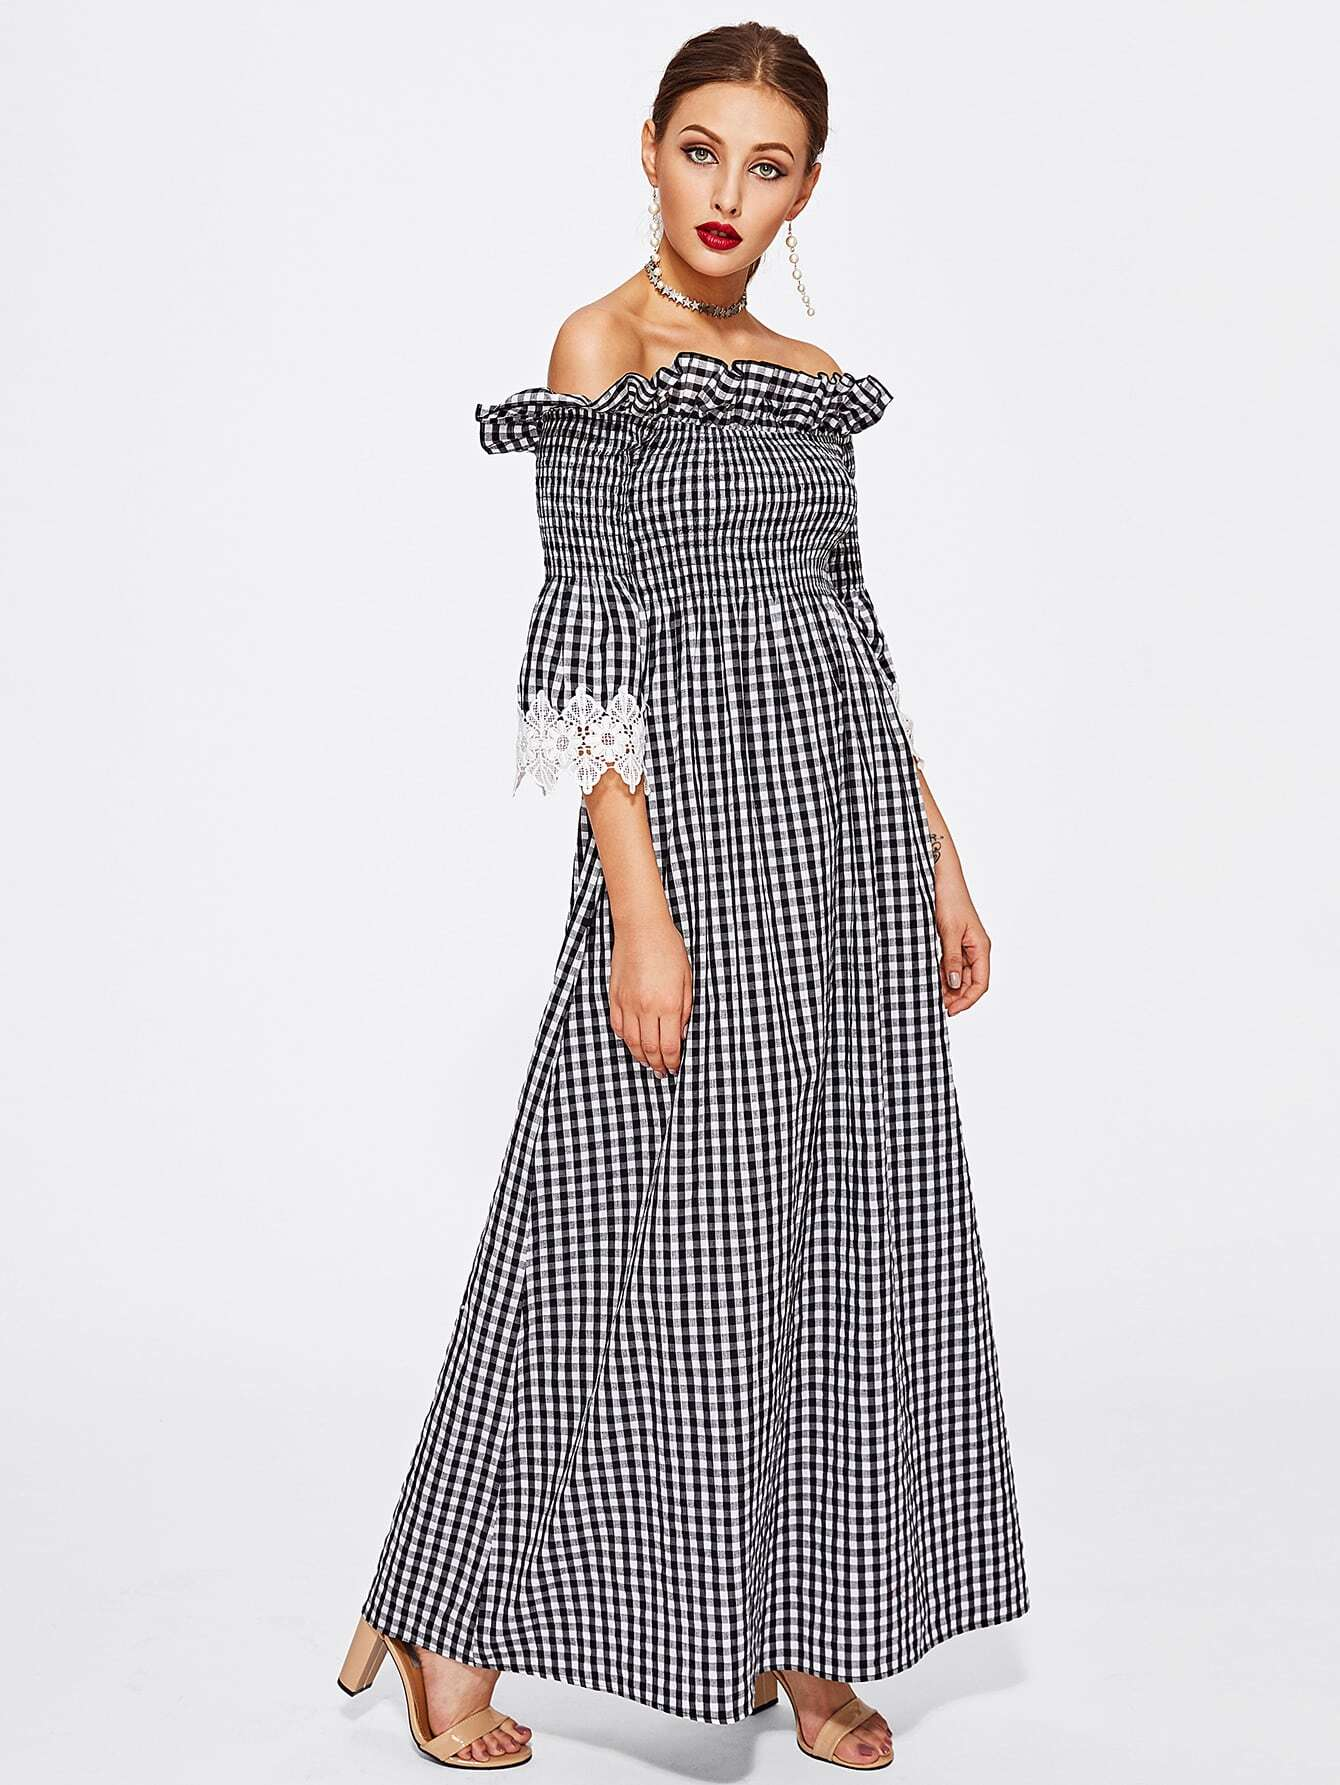 Contrast Lace Cuff Frill Detail Smocked Gingham Dress pearl detail frill off shoulder dress